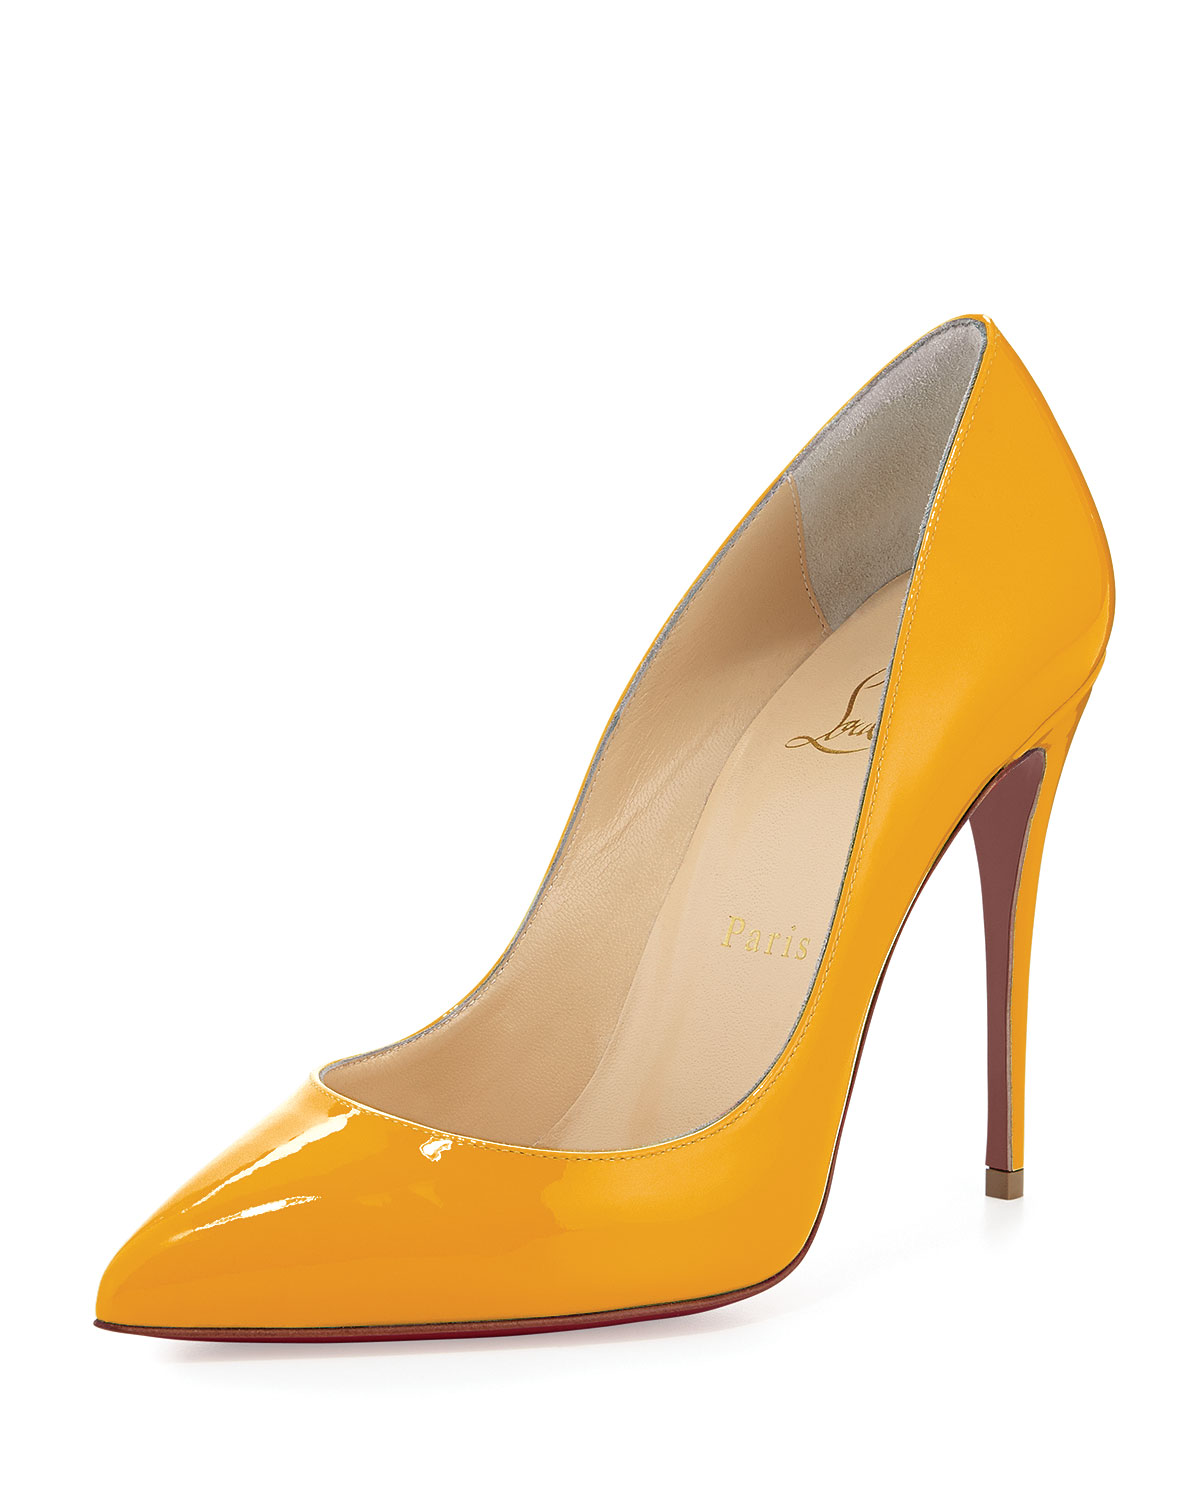 official photos 72e94 1887c Pigalle Follies Patent 100mm Red Sole Pump, Yellow